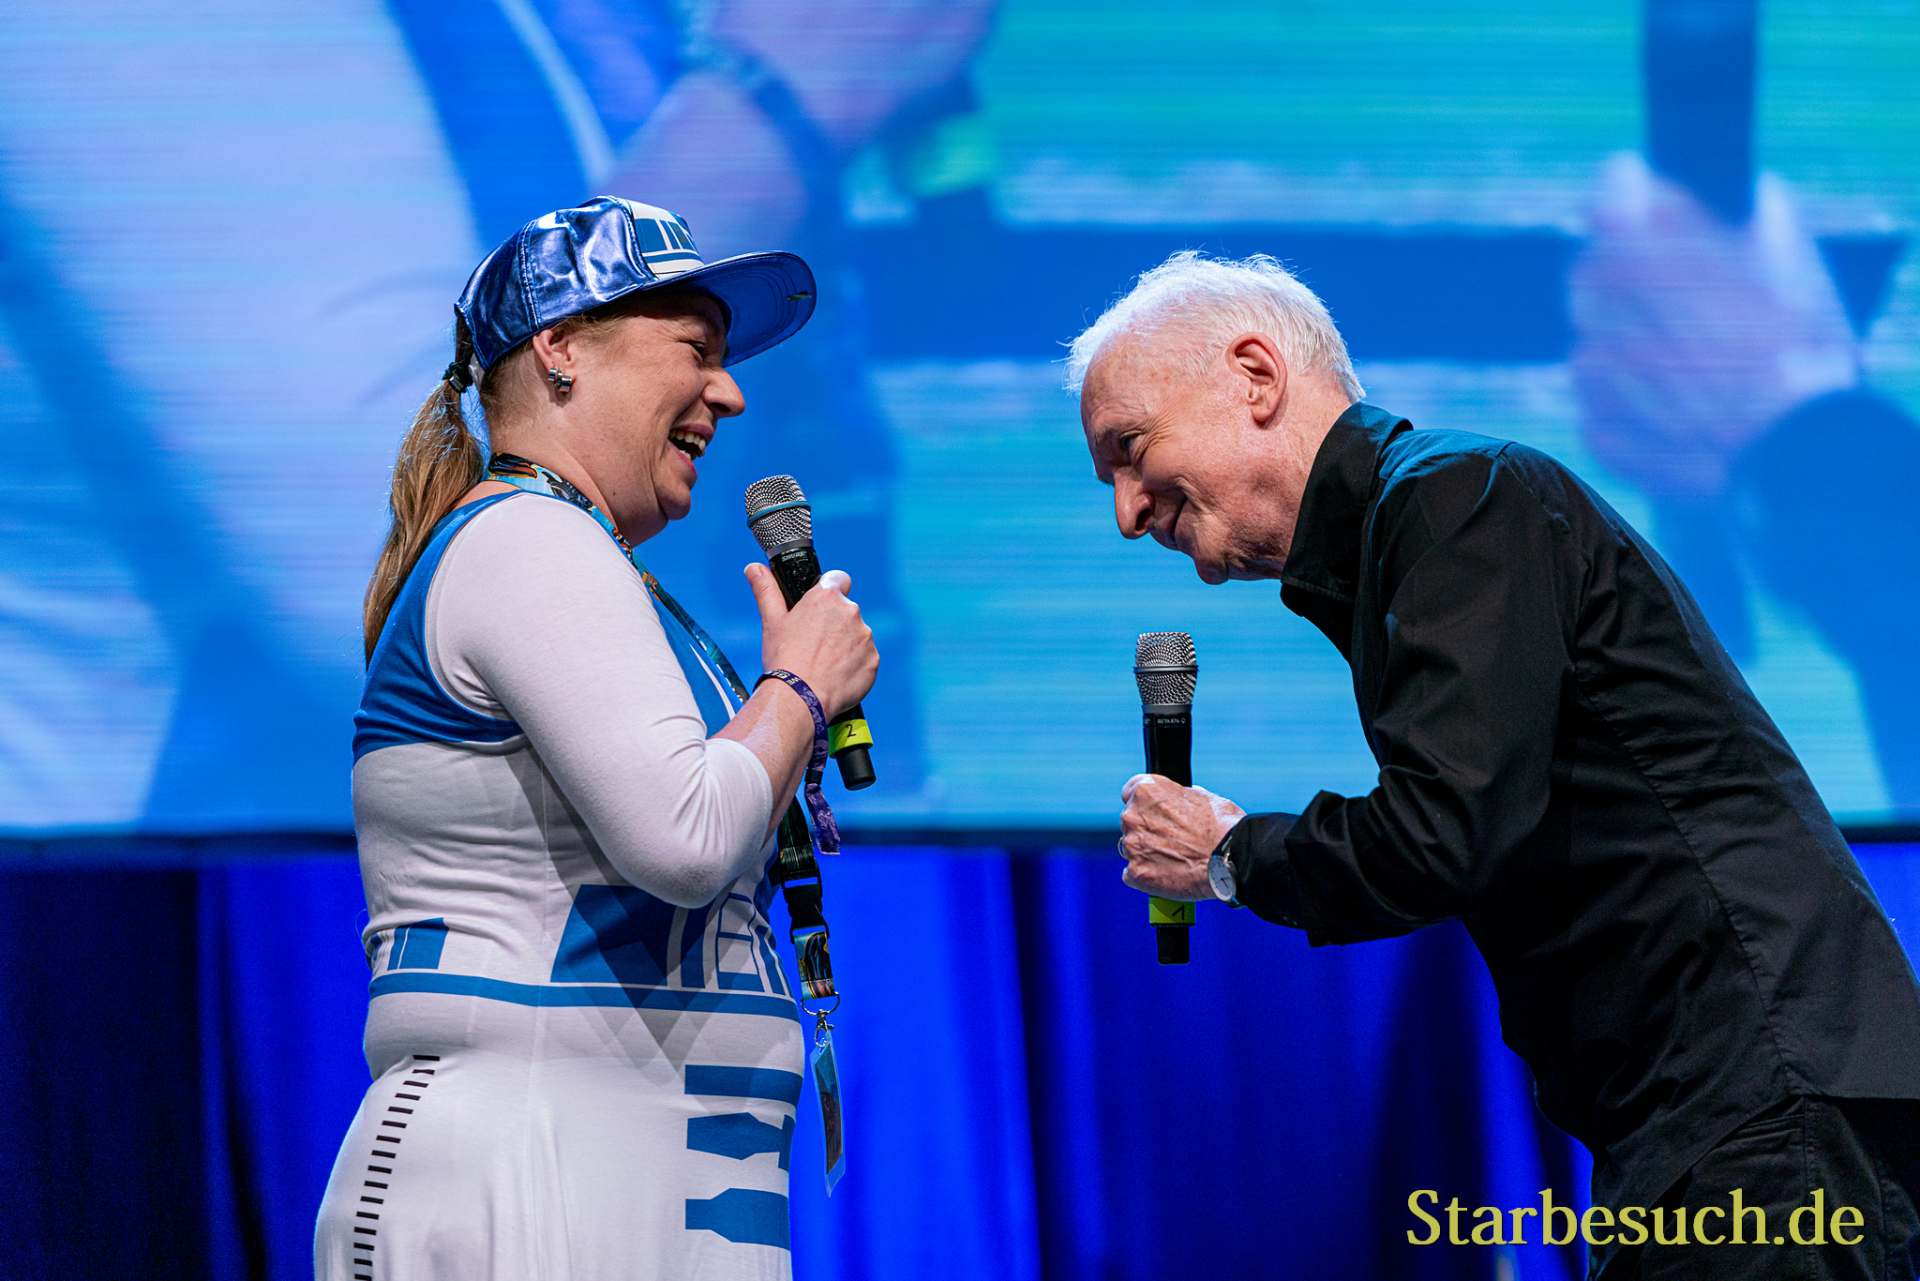 Bonn, Germany - June 8 2019: a fan and Anthony Daniels at FedCon 28, a four day sci-fi convention. FedCon 28 took place Jun 7-10 2019.